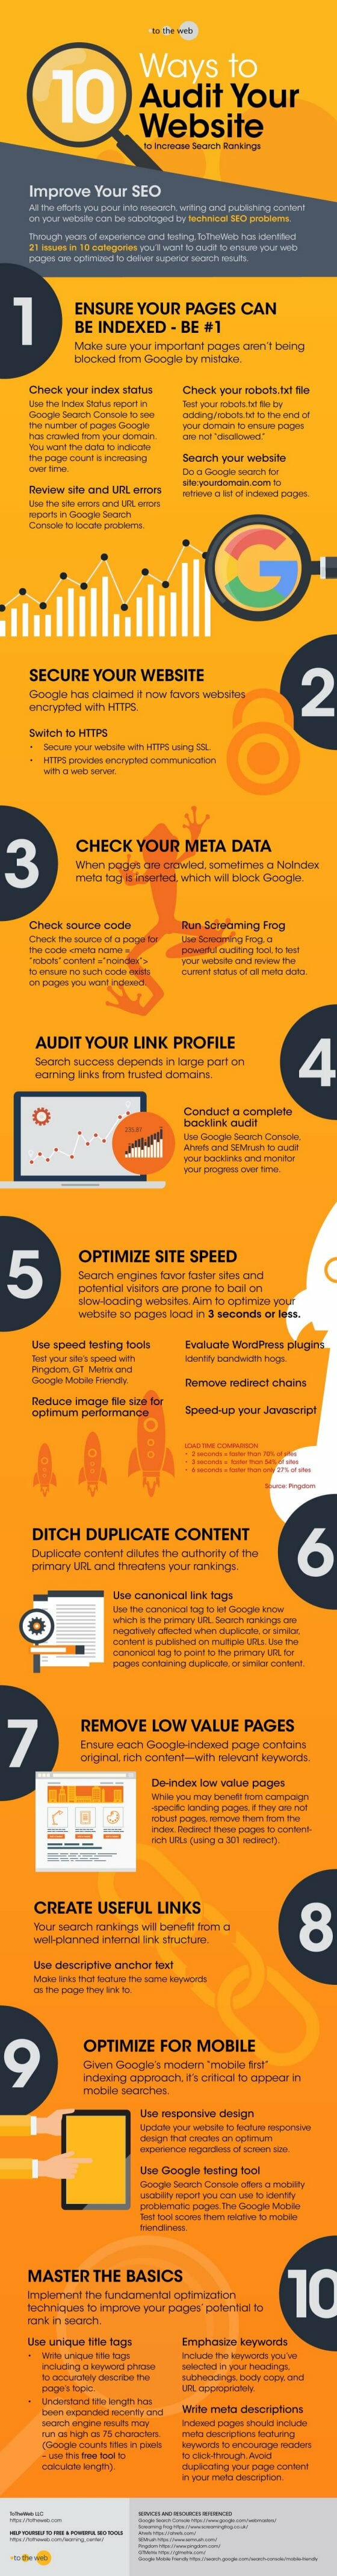 Technical SEO Audit → 10-Point Checklist to Improve Google Search [Infographic]